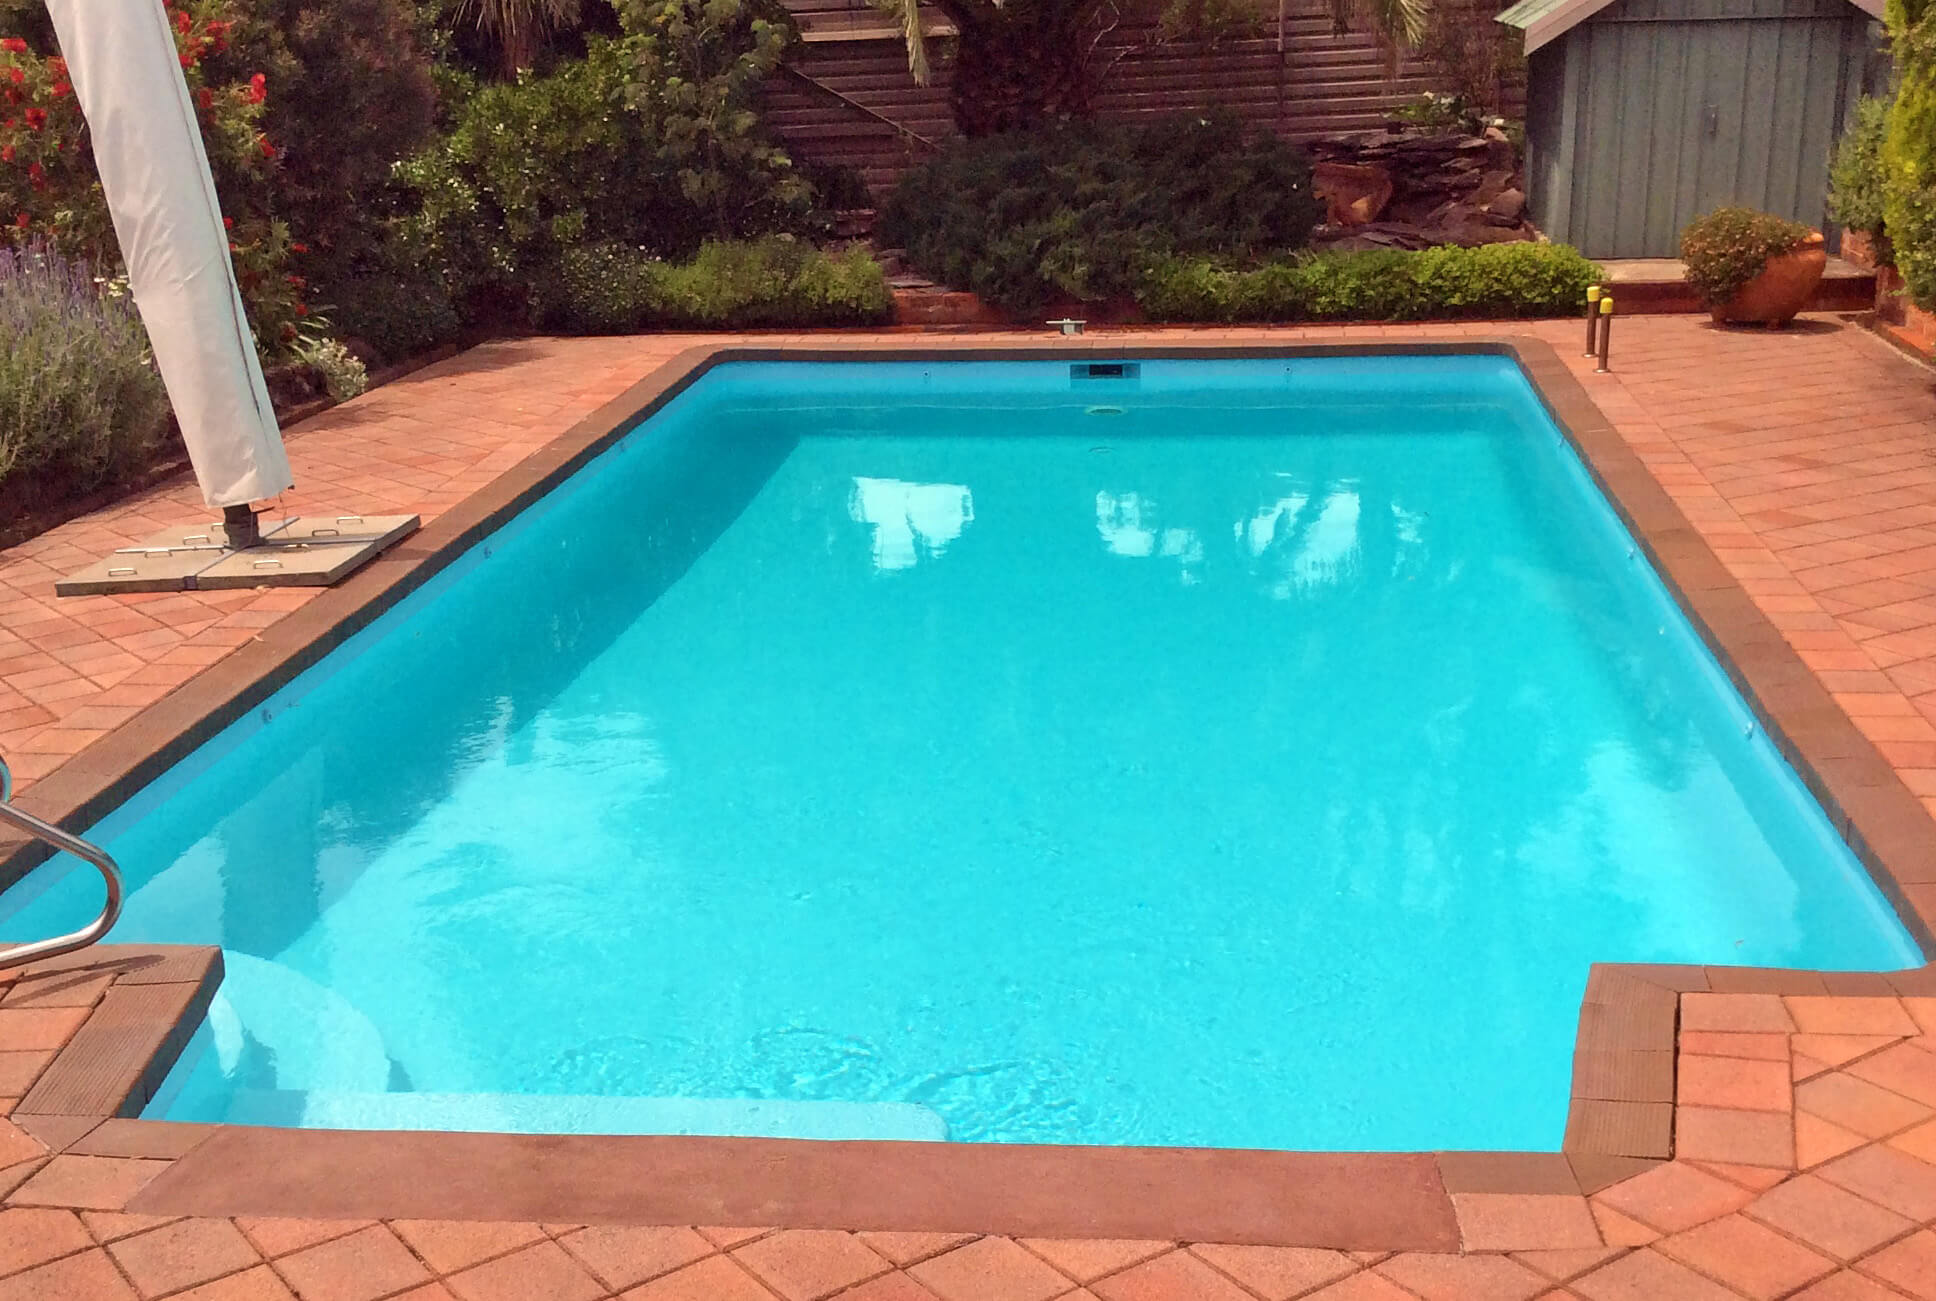 Features of epotec epoxy pool paint designed for swimming ...